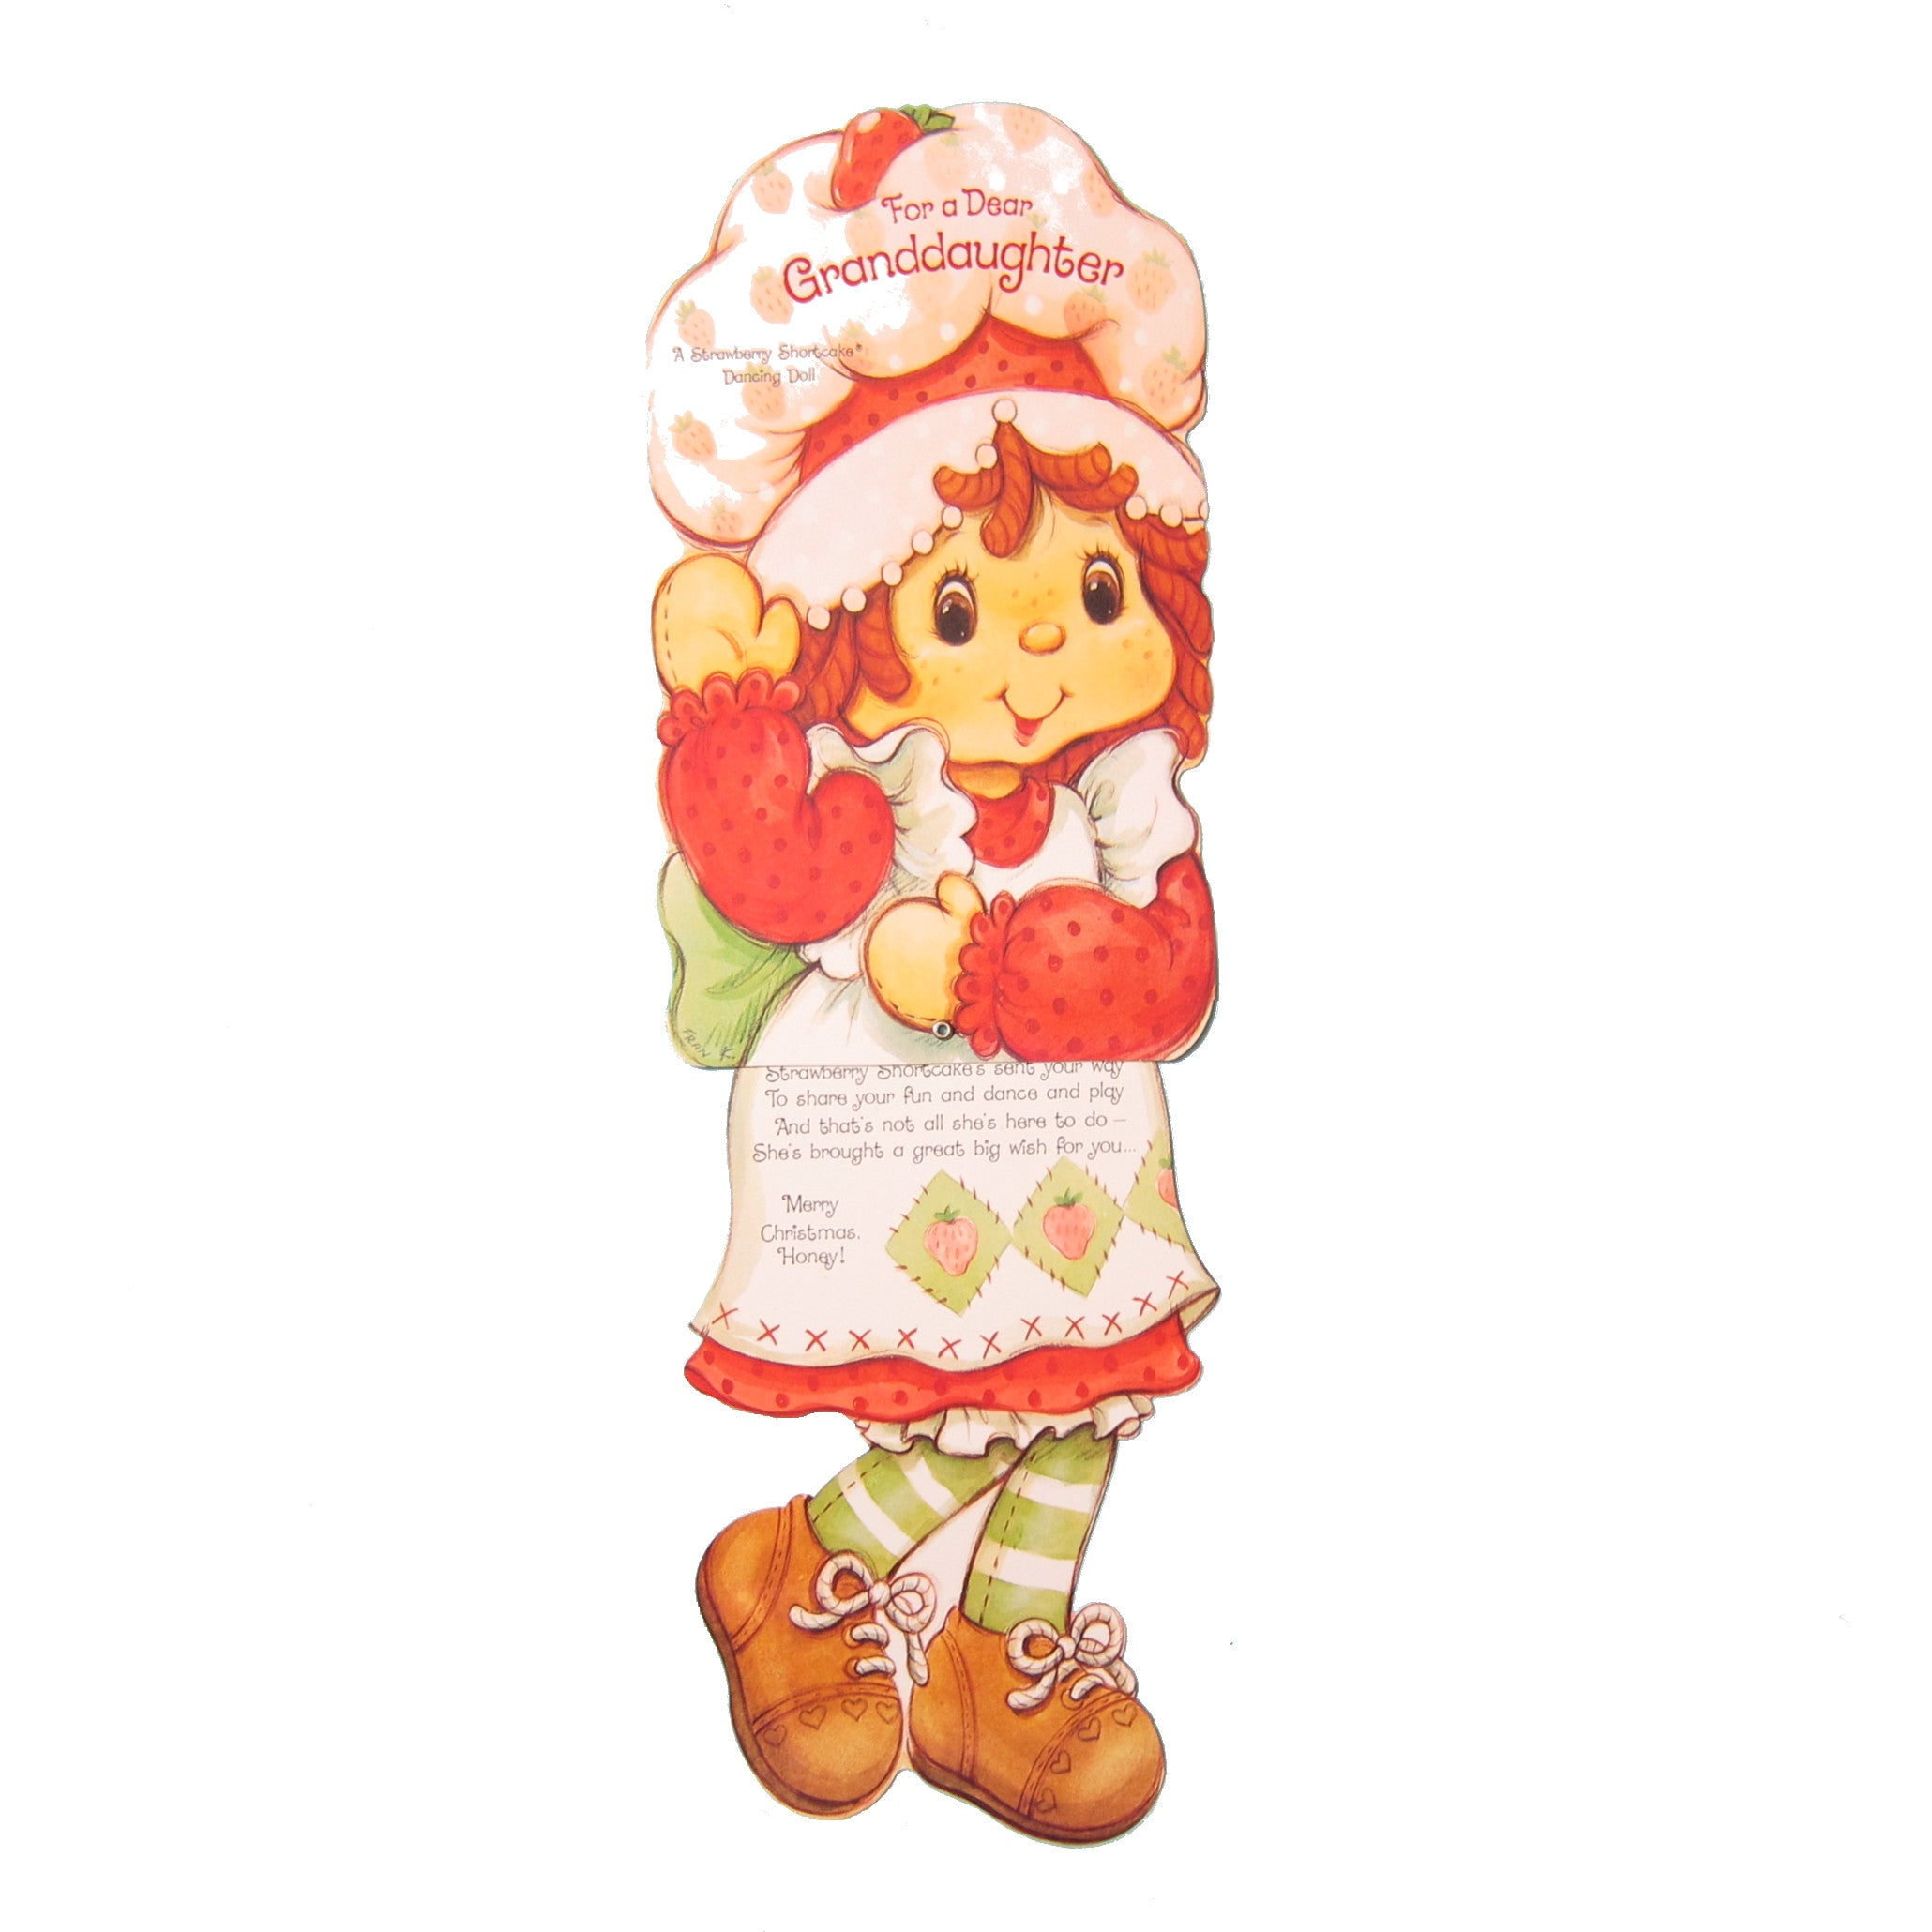 Strawberry Shortcake Dancing Doll Christmas card for granndaughter